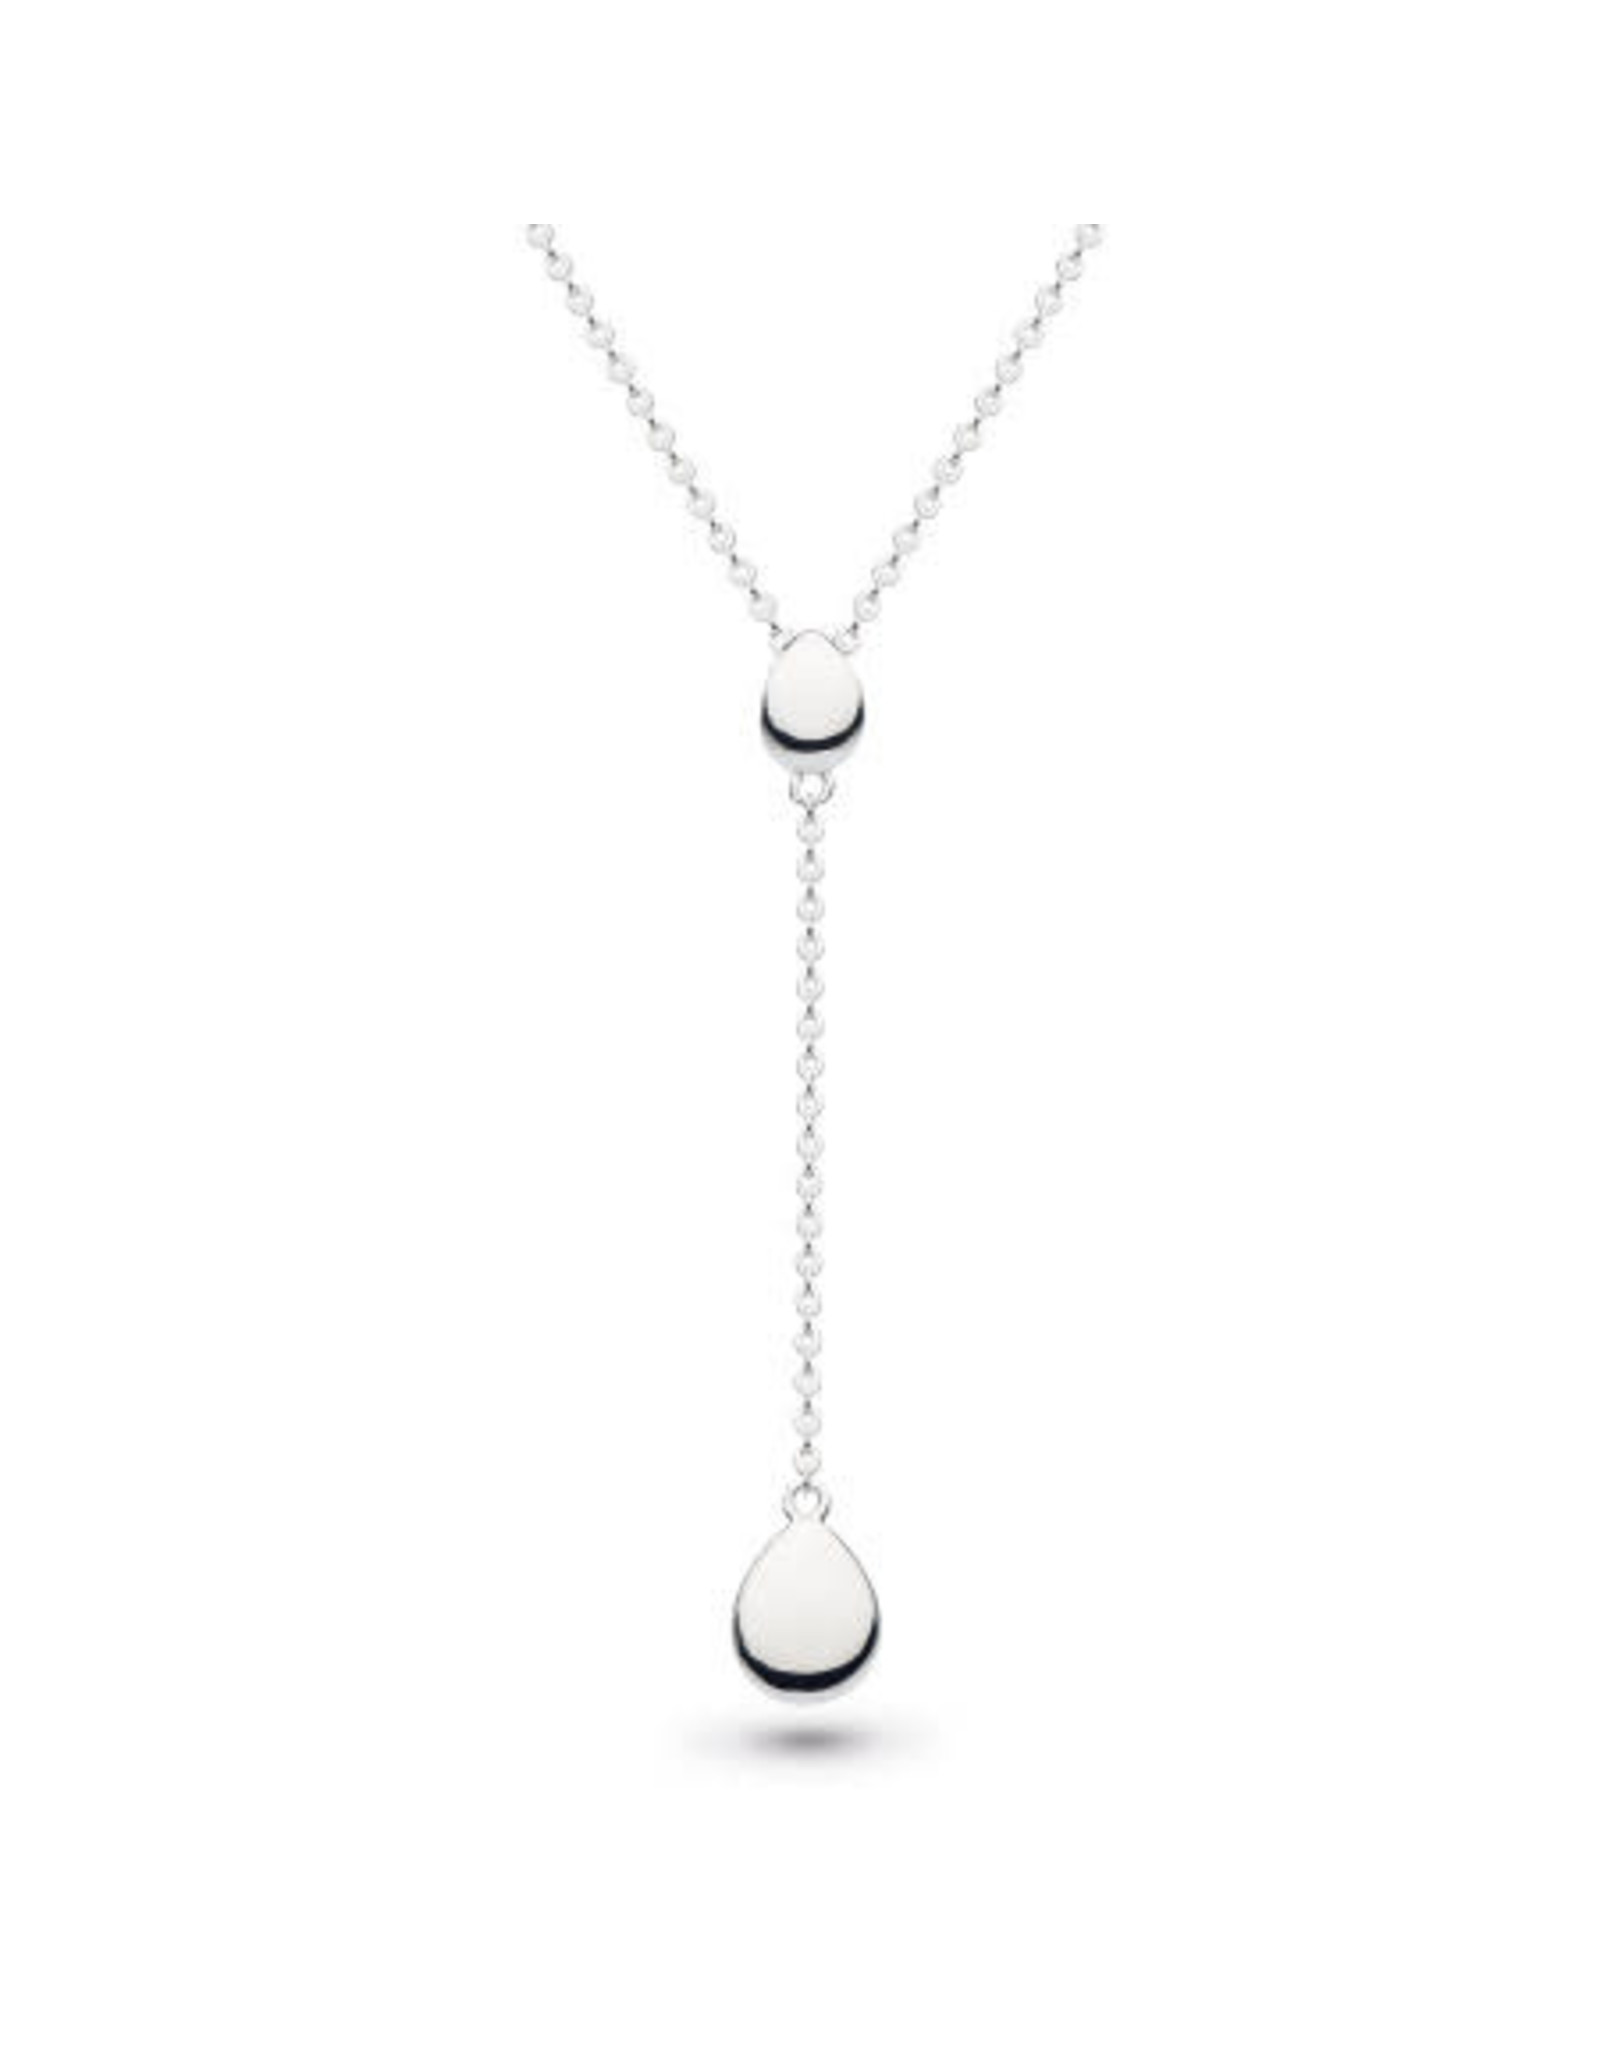 Kit Heath COAST PEBBLE CHAIN LARIAT NECKLACE